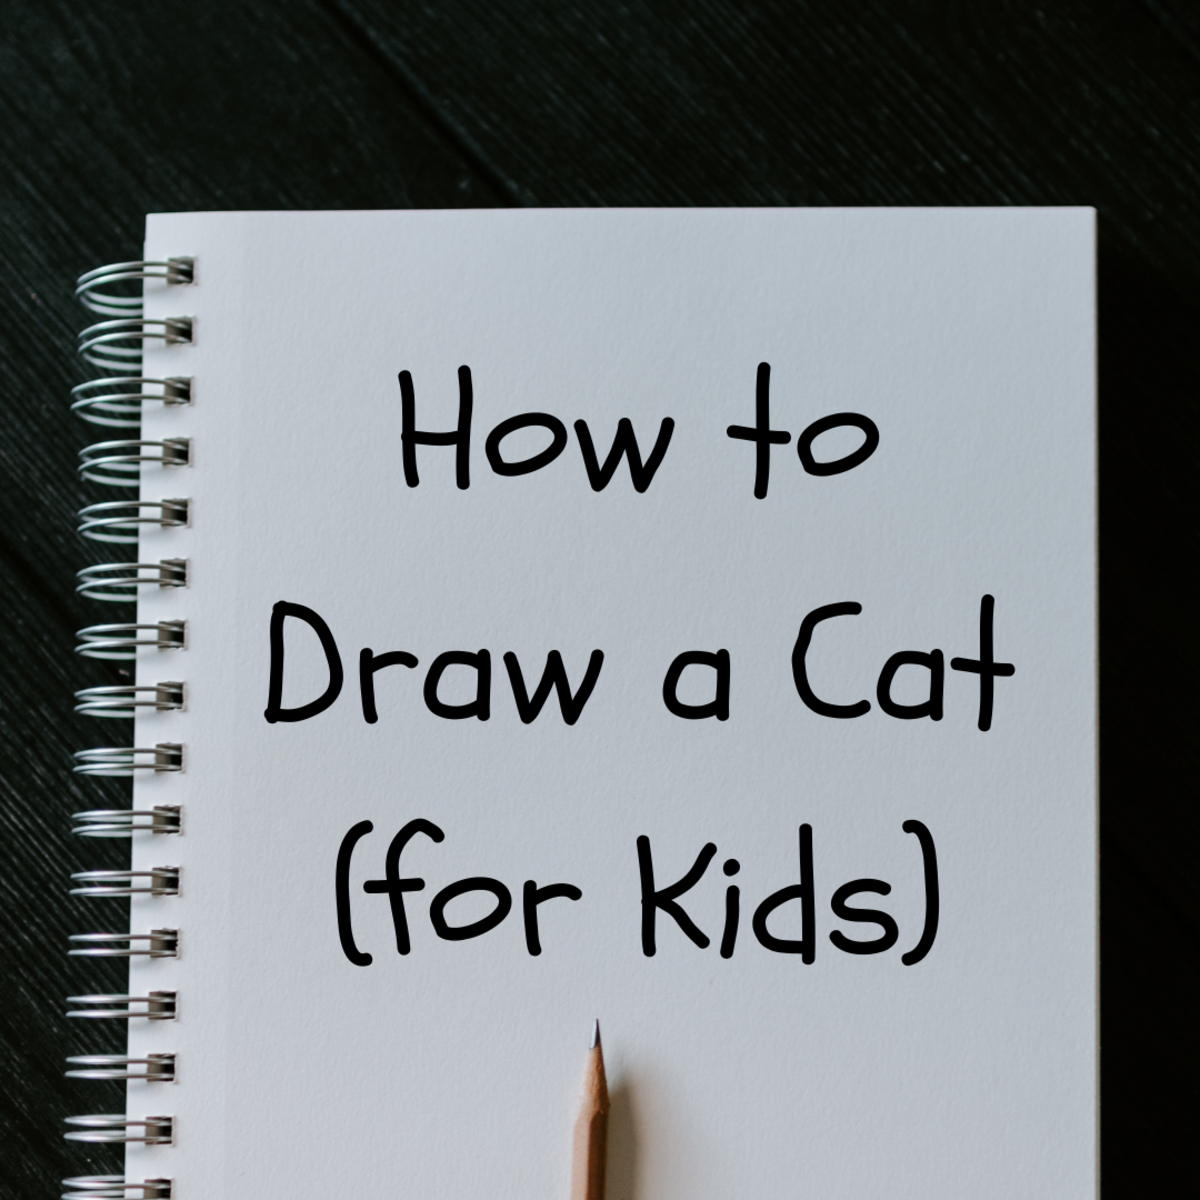 This article teaches you to draw a cat with simple, step-by-step instructions anyone can follow